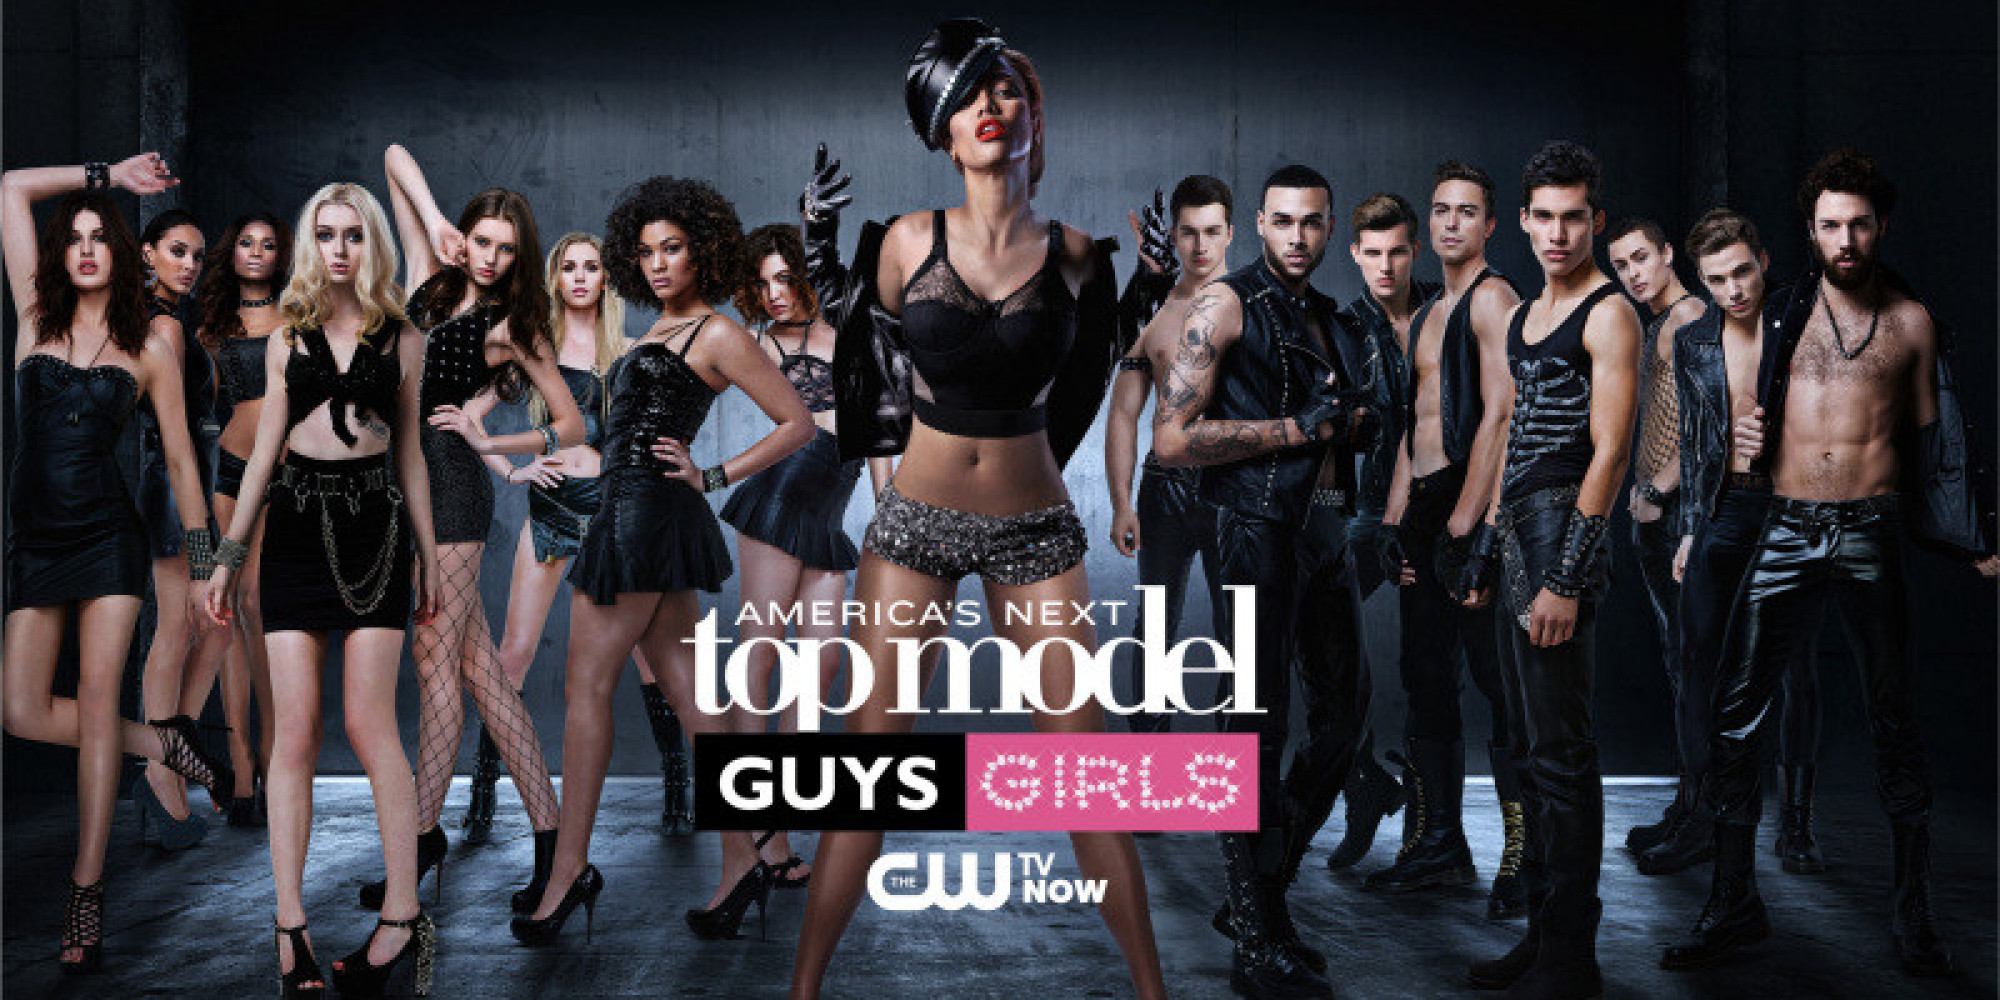 americas next top model to return for 21st cycle